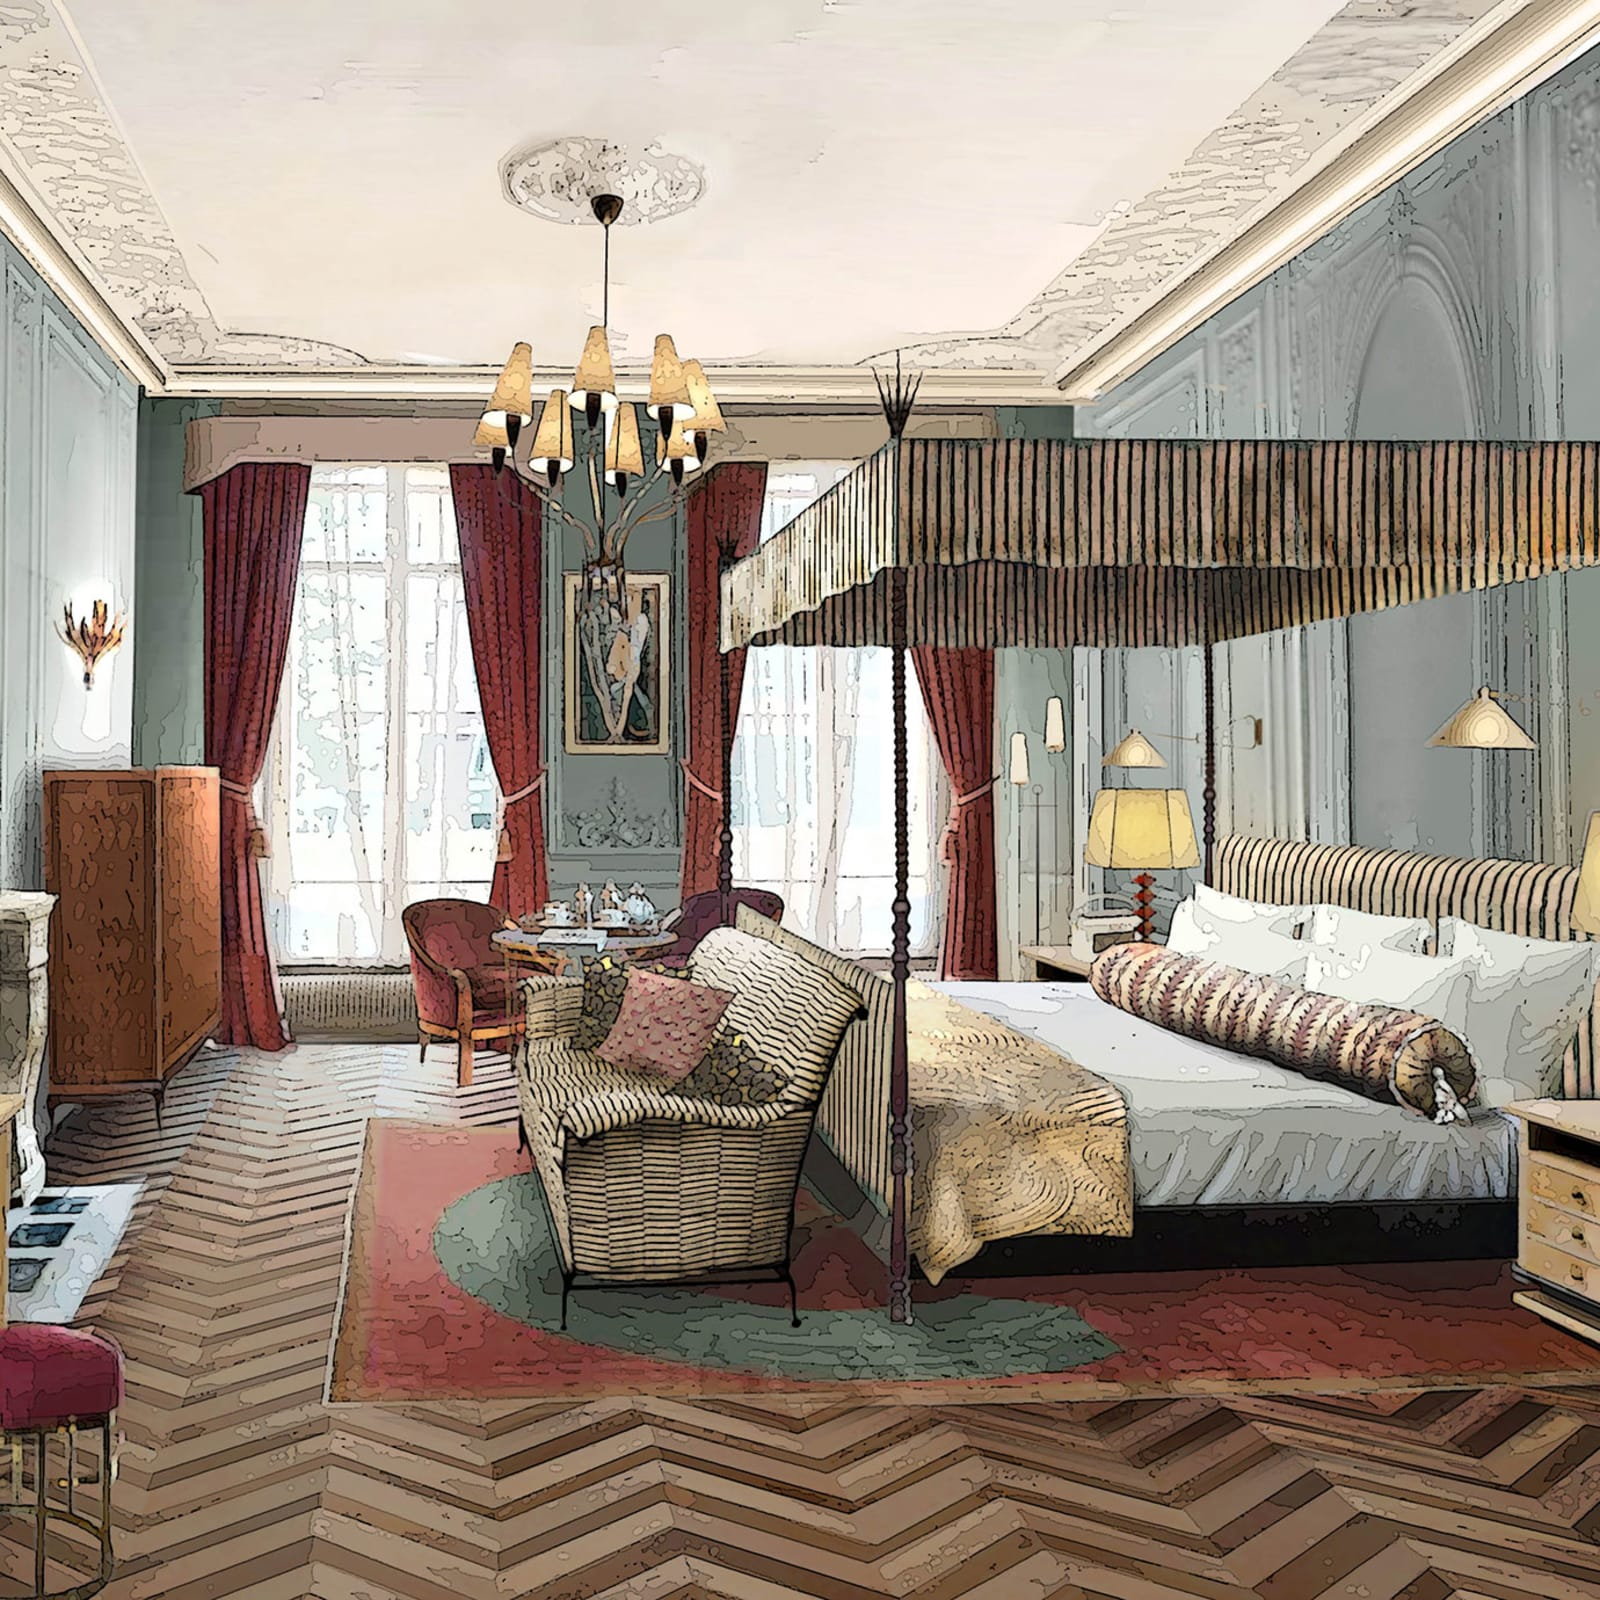 Render of guestroom in the brand's Paris property